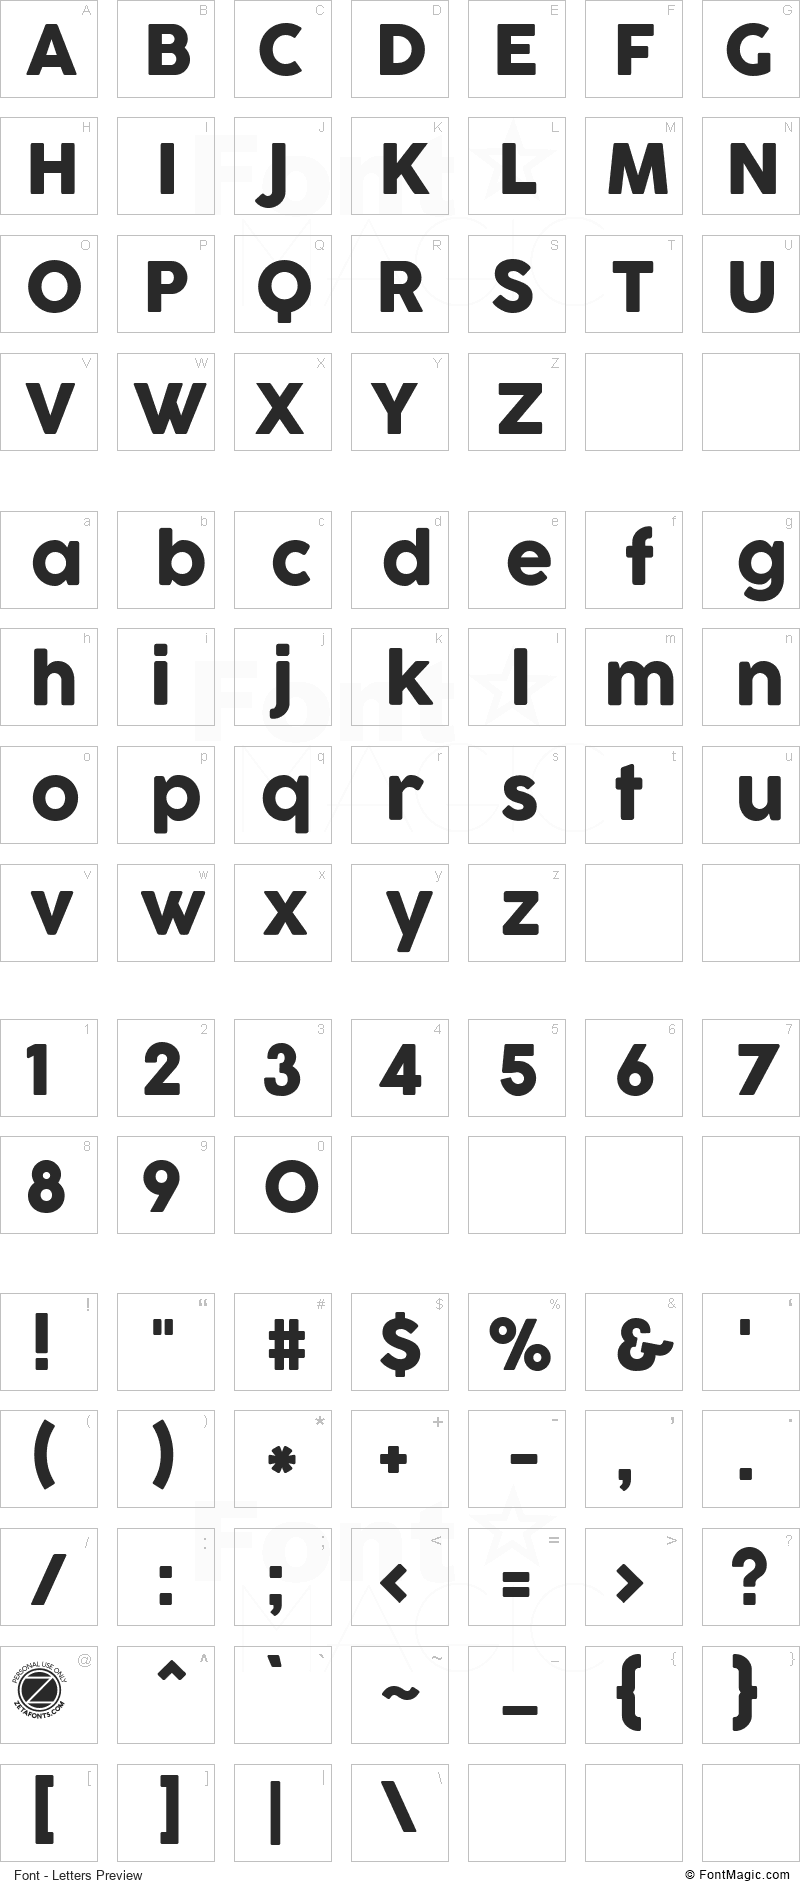 Cocogoose Font - All Latters Preview Chart